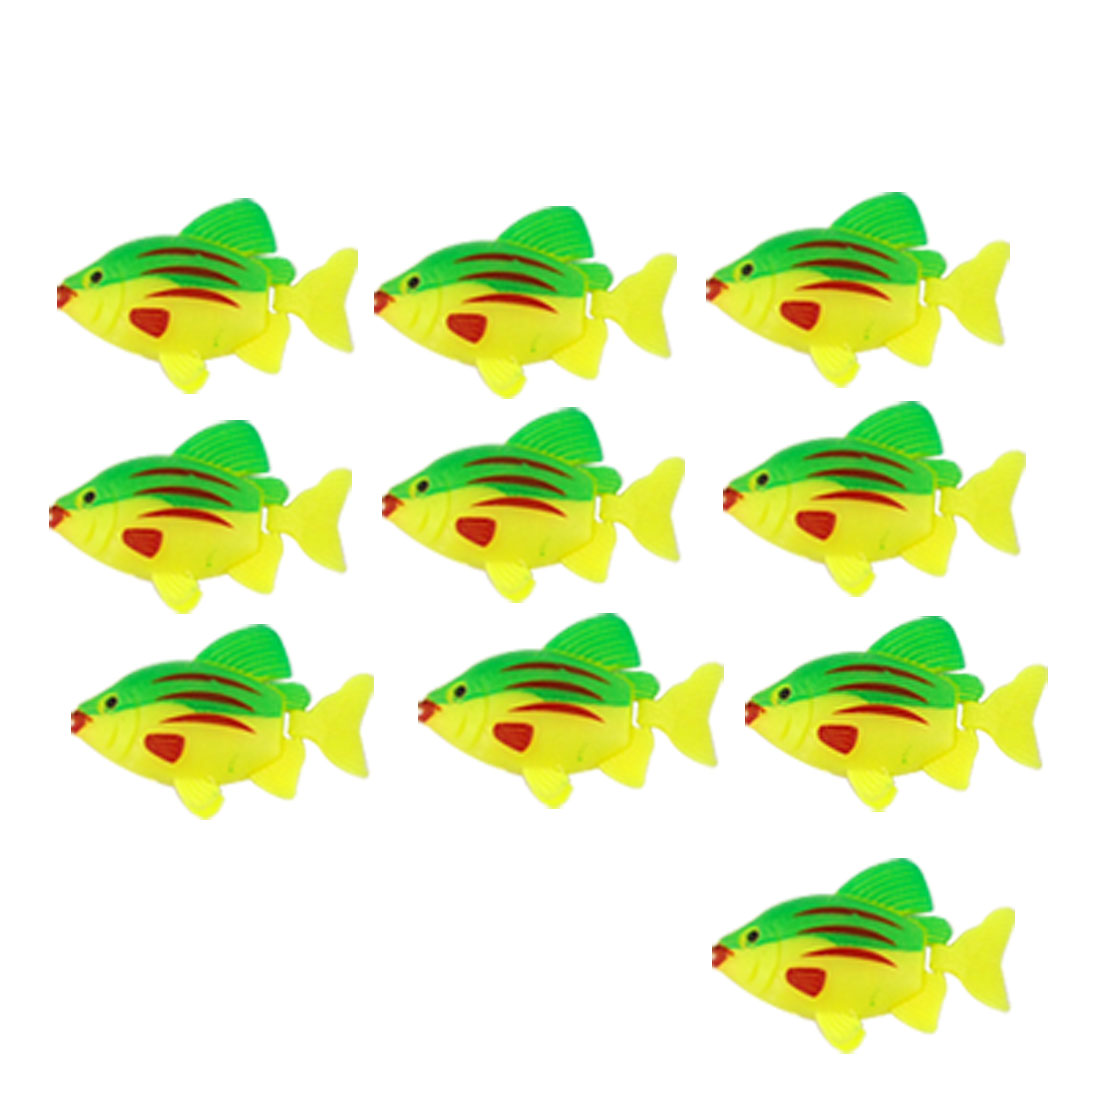 Aquarium 10 Pcs Artificial Yellow Green Plastic Fish Decor